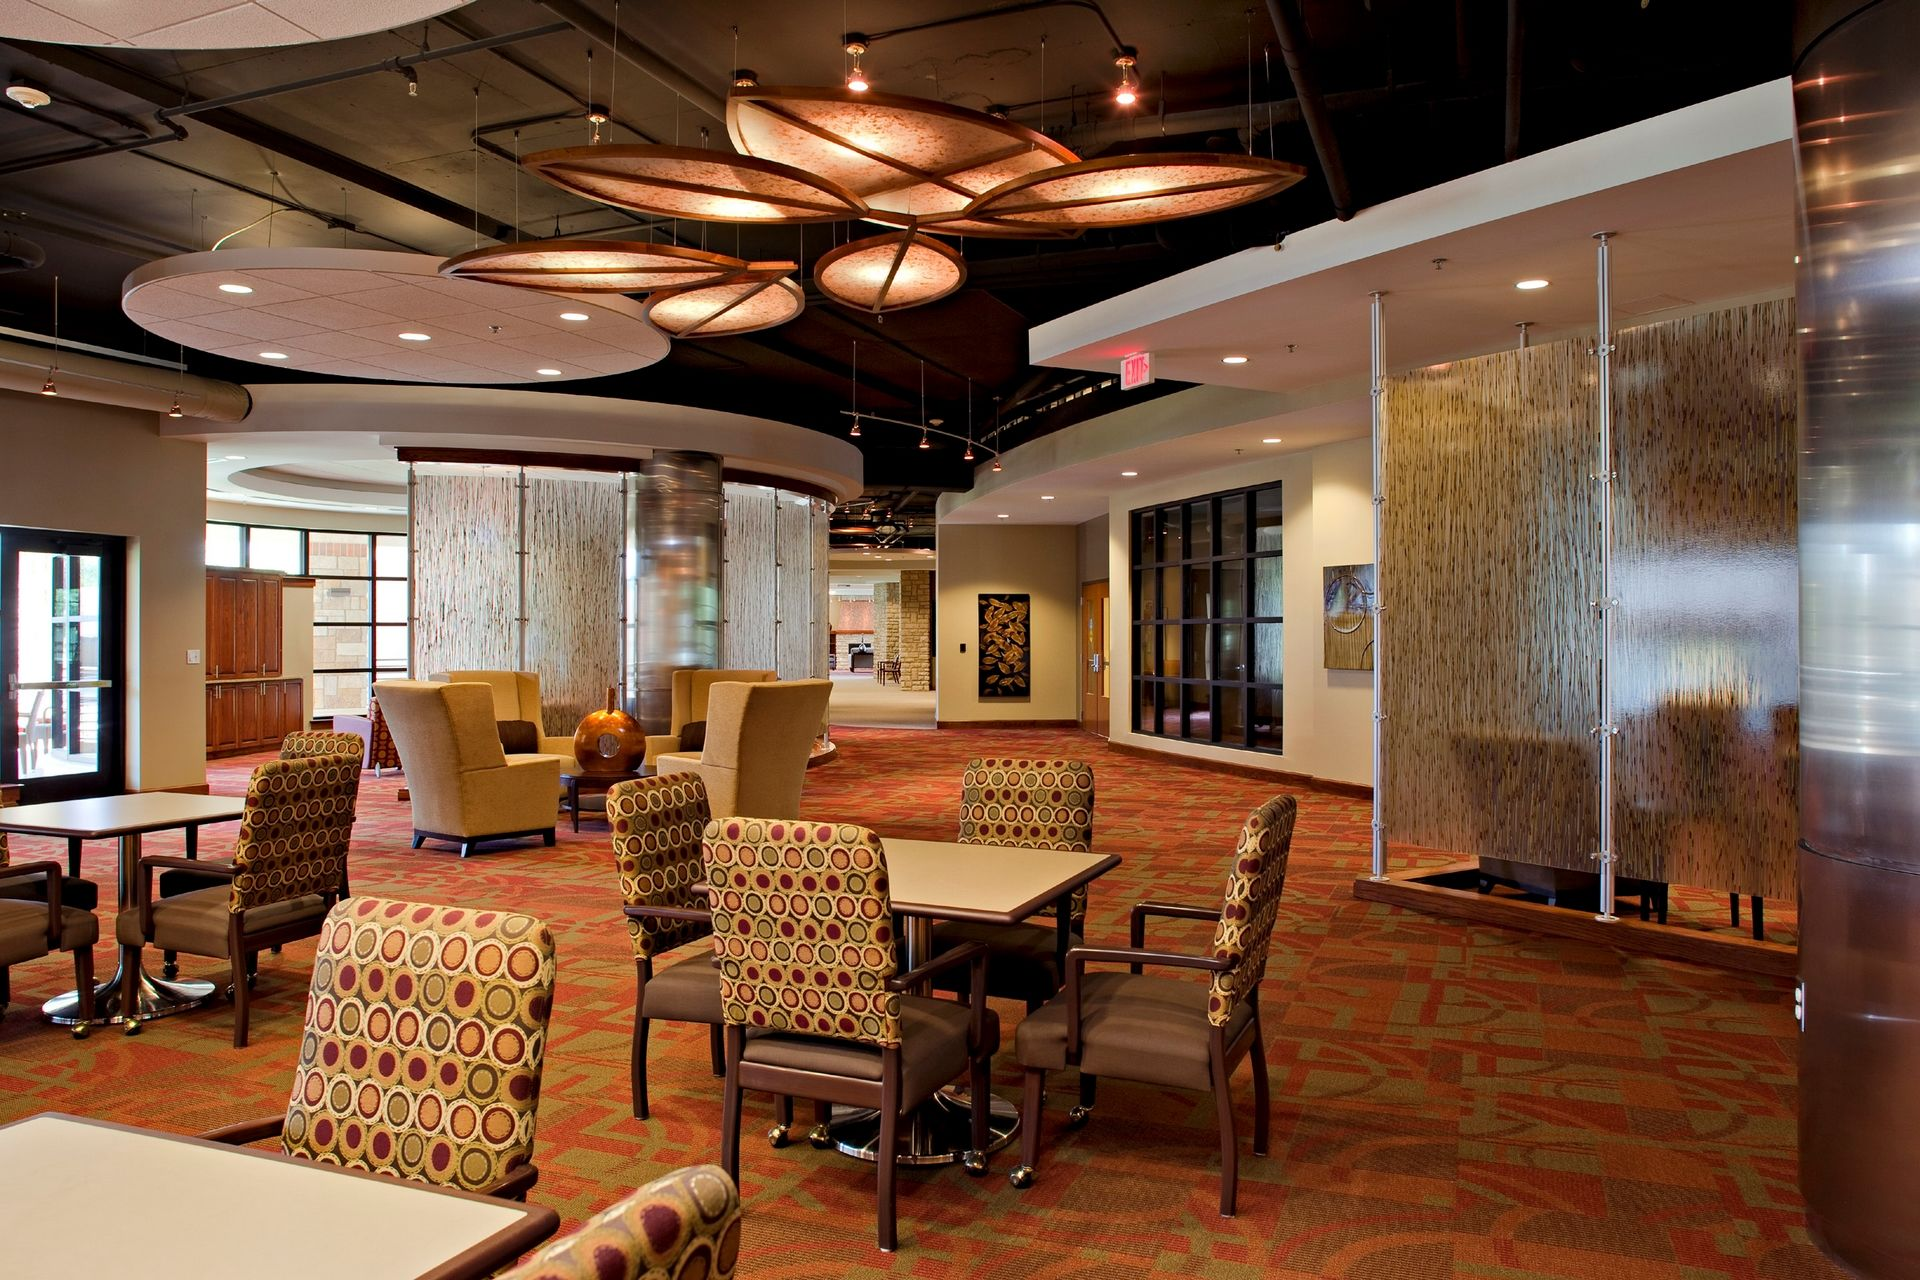 Lakeview Village Retirement Skilled Nursing and Rehab Senior Living Design THW West Cooridor